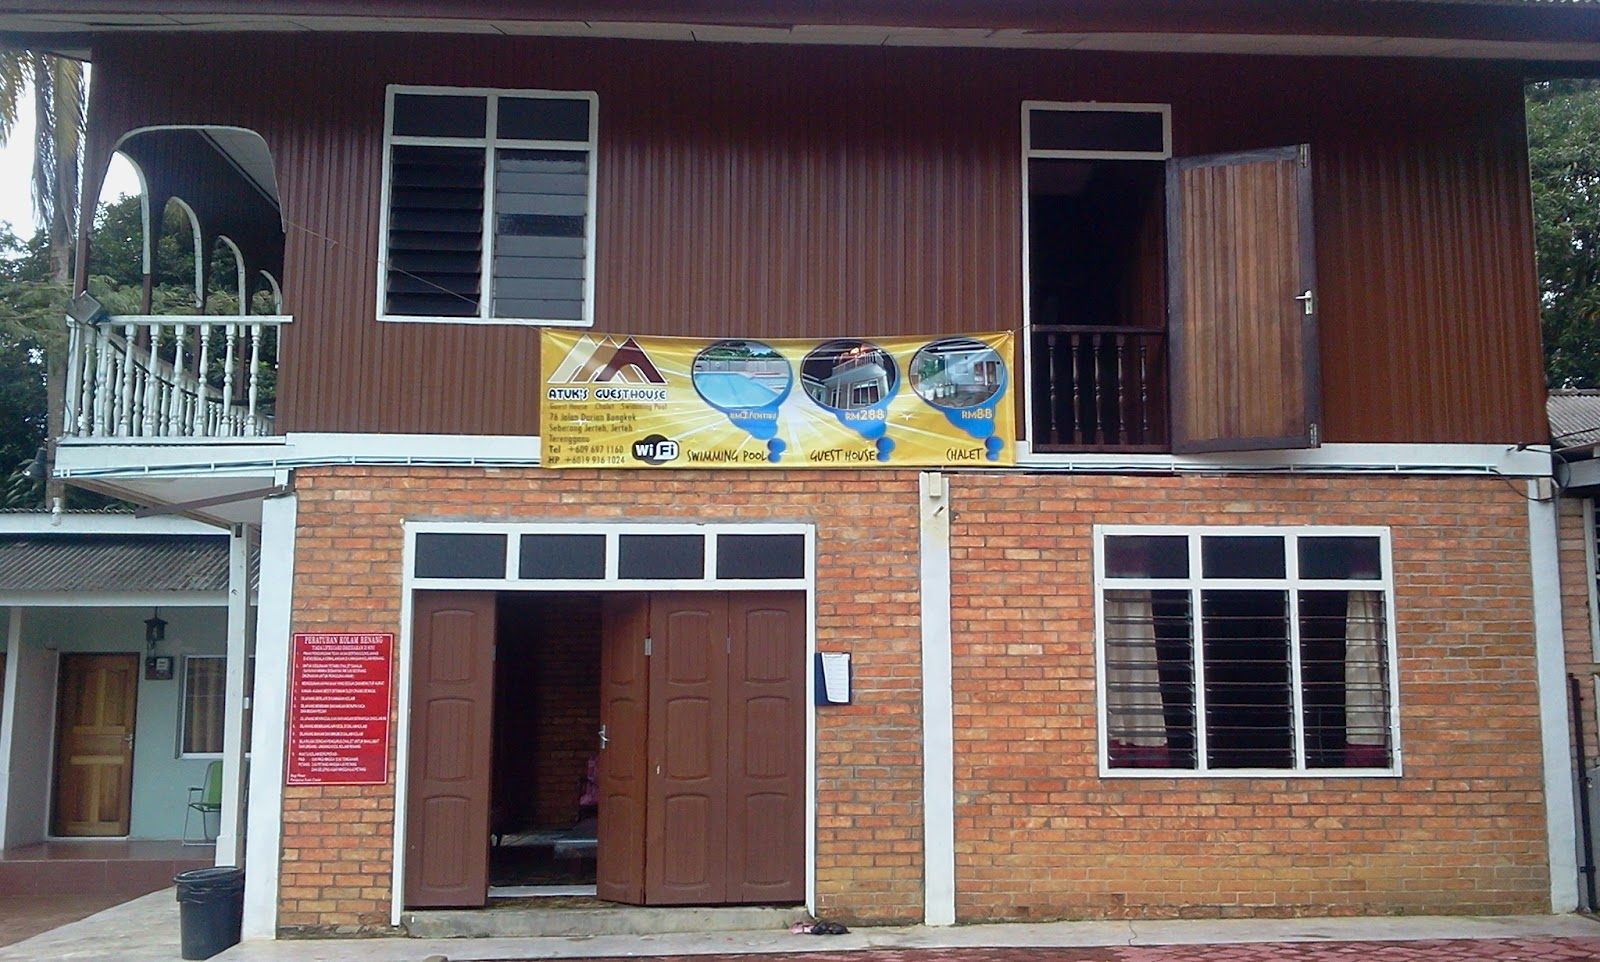 jerteh singles Terengganu accommodation: find 10,313 traveller reviews and 14,654 candid photos for 96 terengganu hotels on tripadvisor.